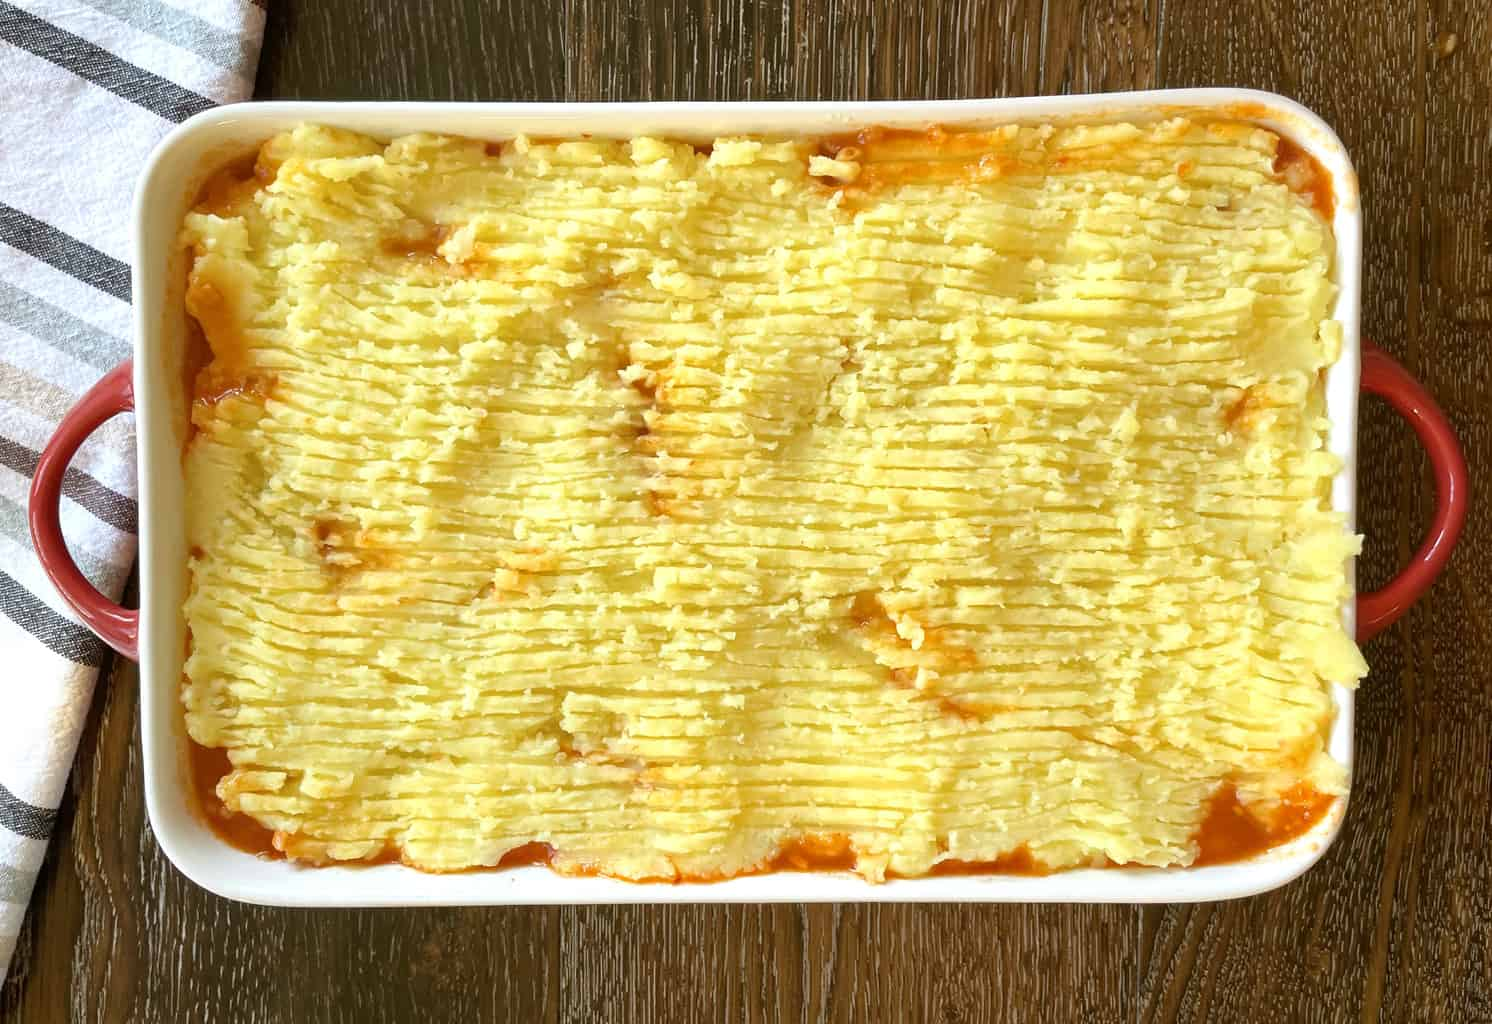 Use a fork to create lines on the shepherds pie to create a golden crust